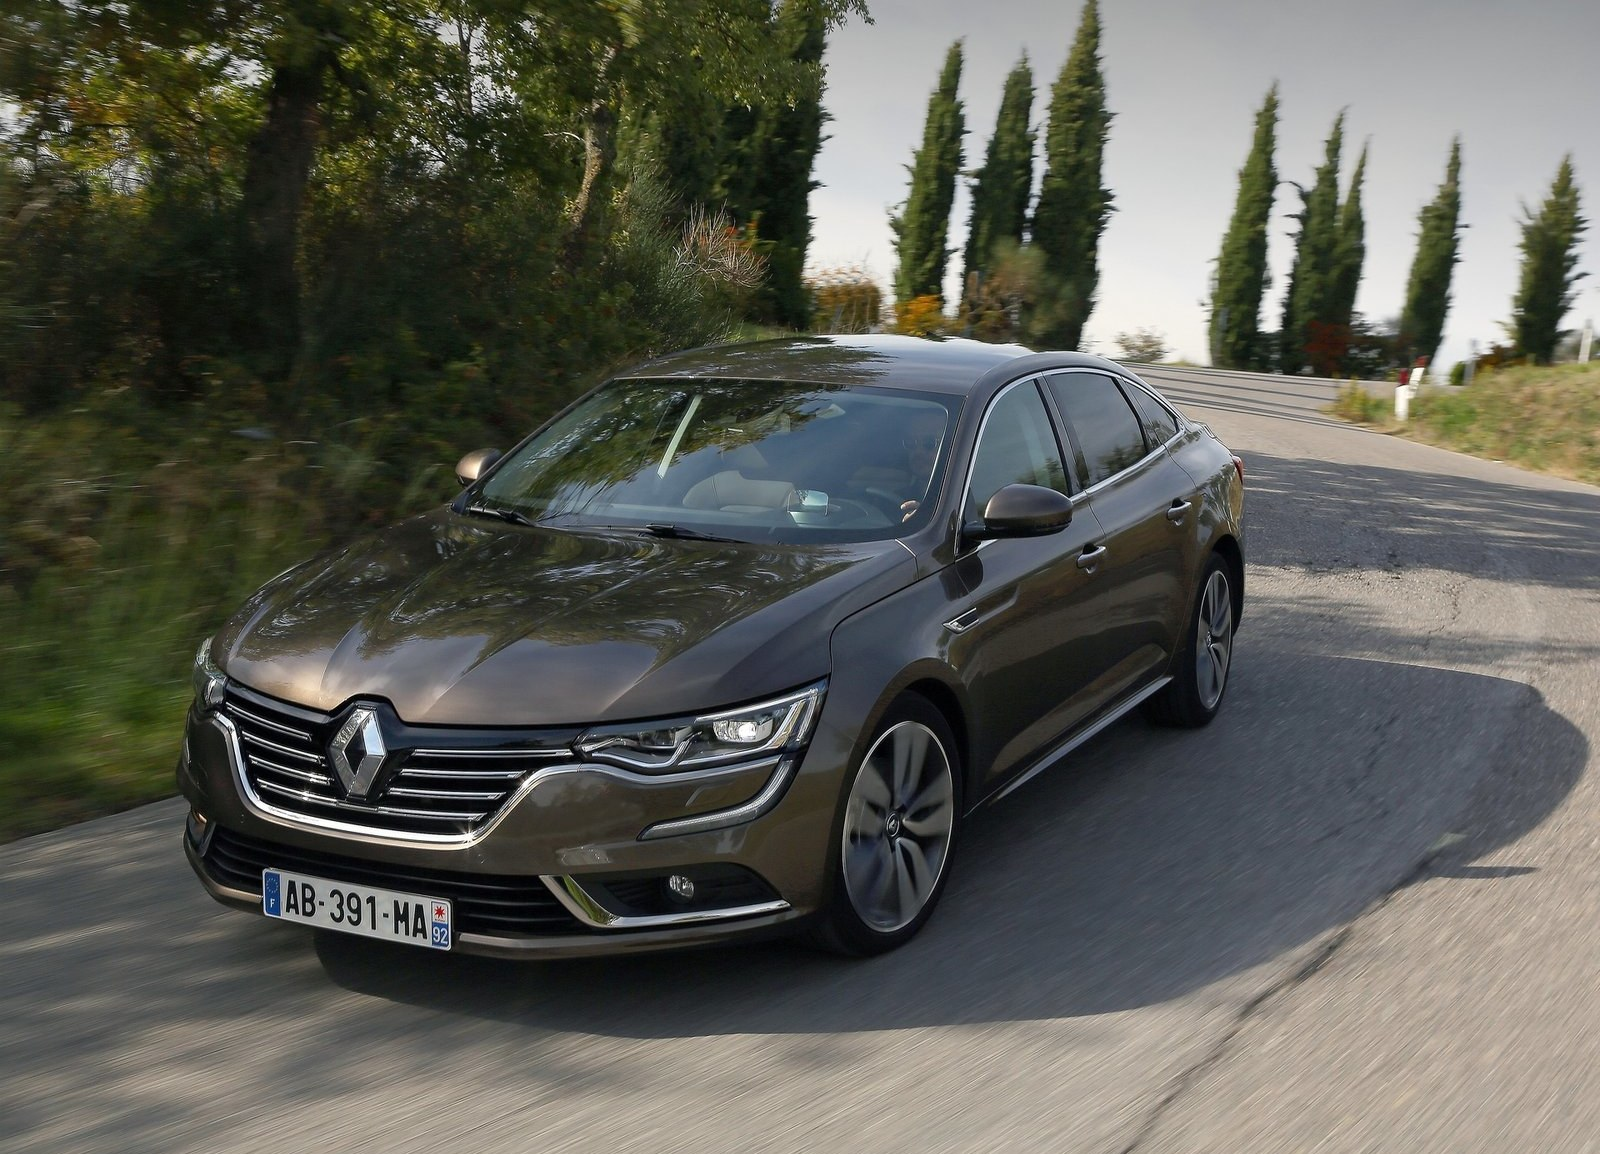 2016 Renault Talisman Performance Test (View 1 of 14)